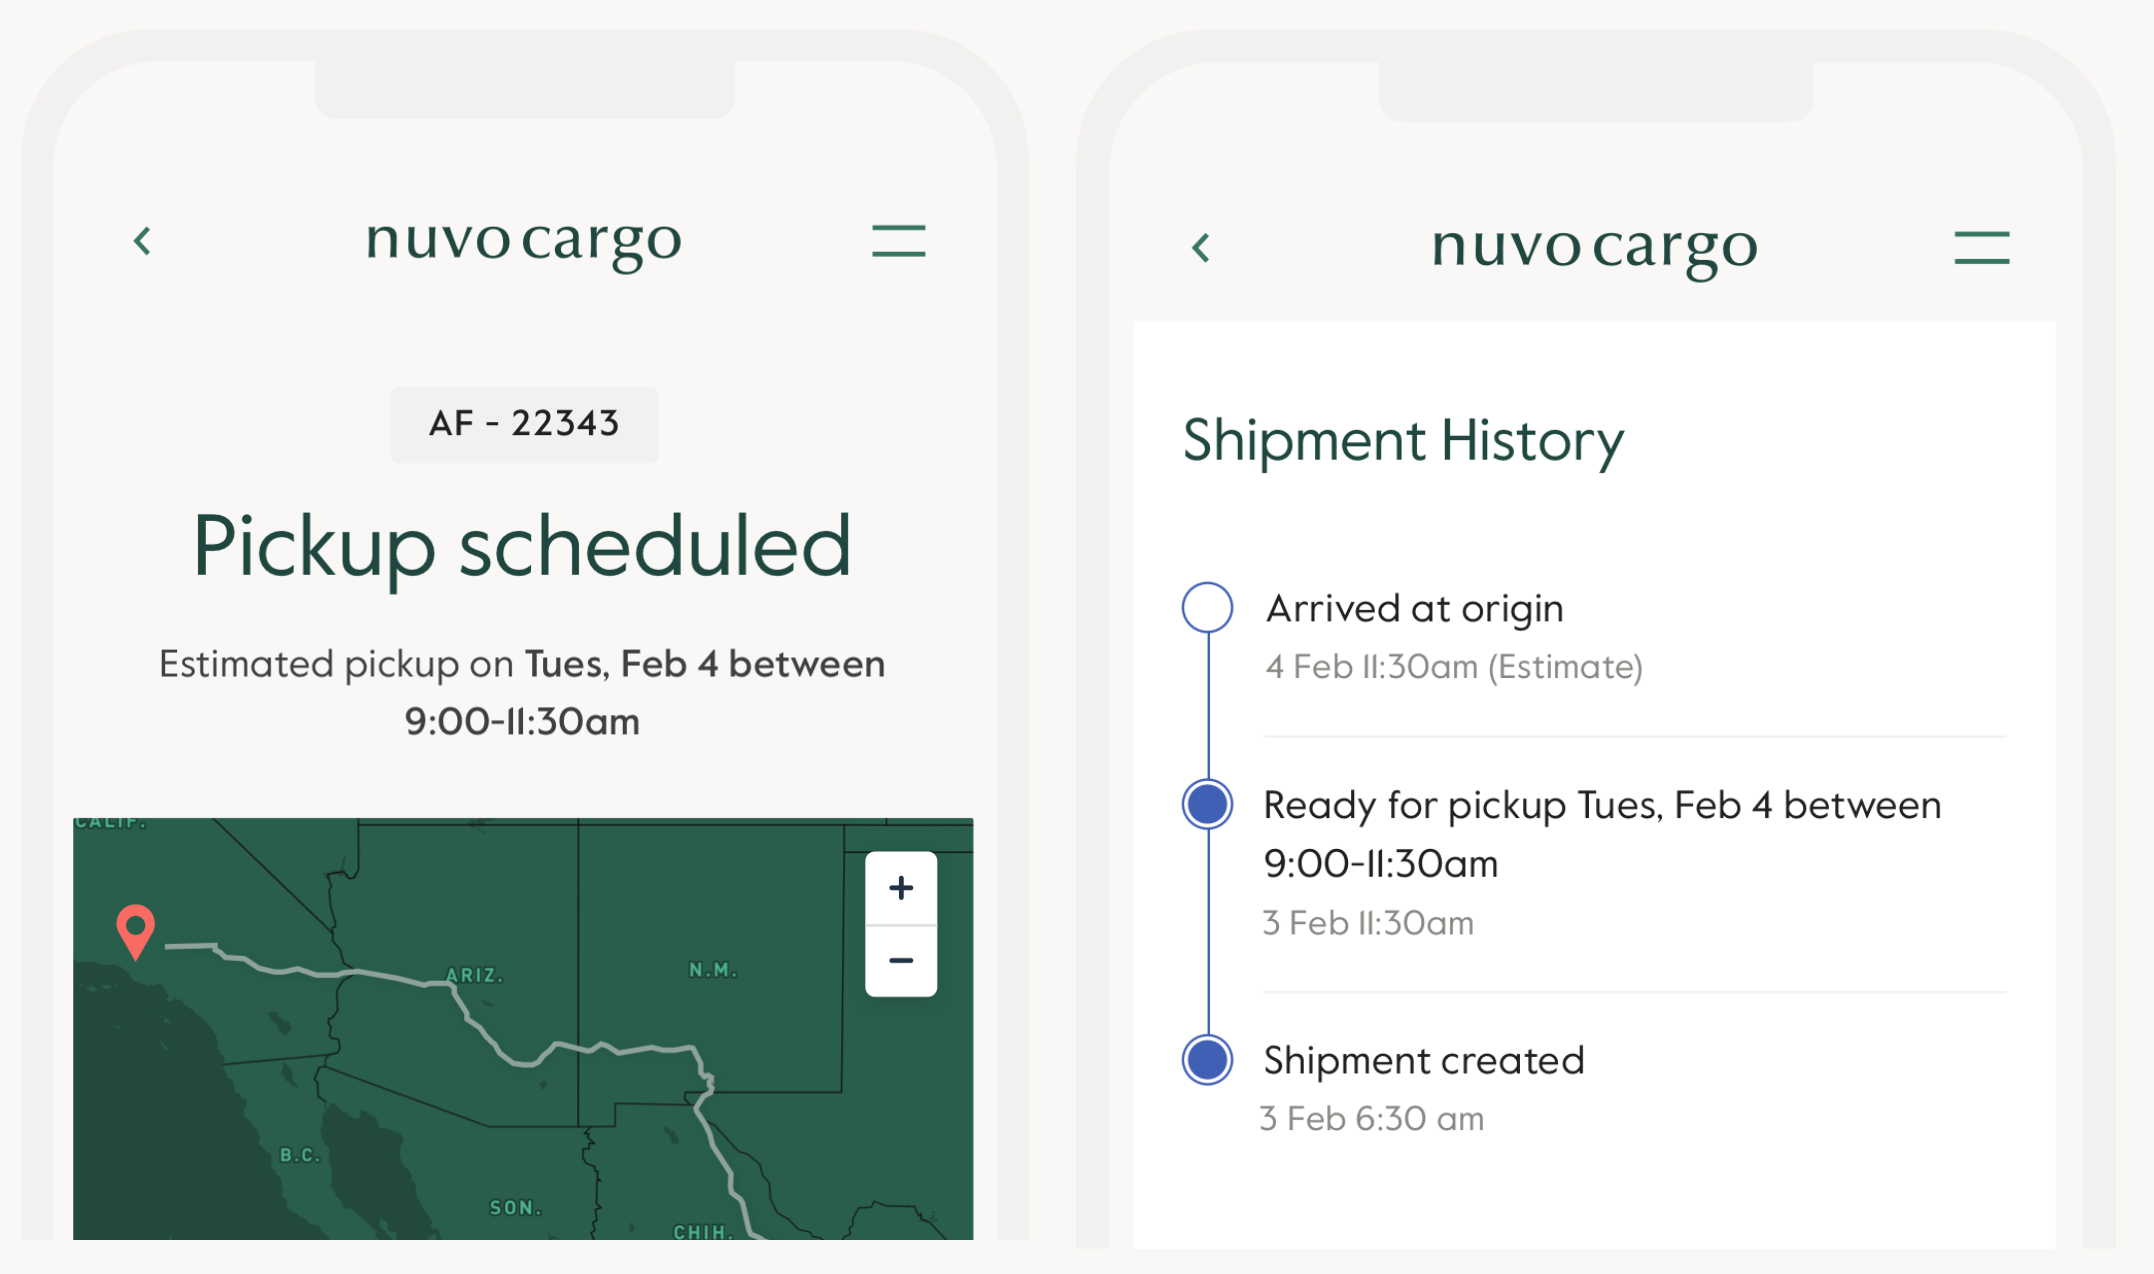 Nuvocargo interface for mobile devices